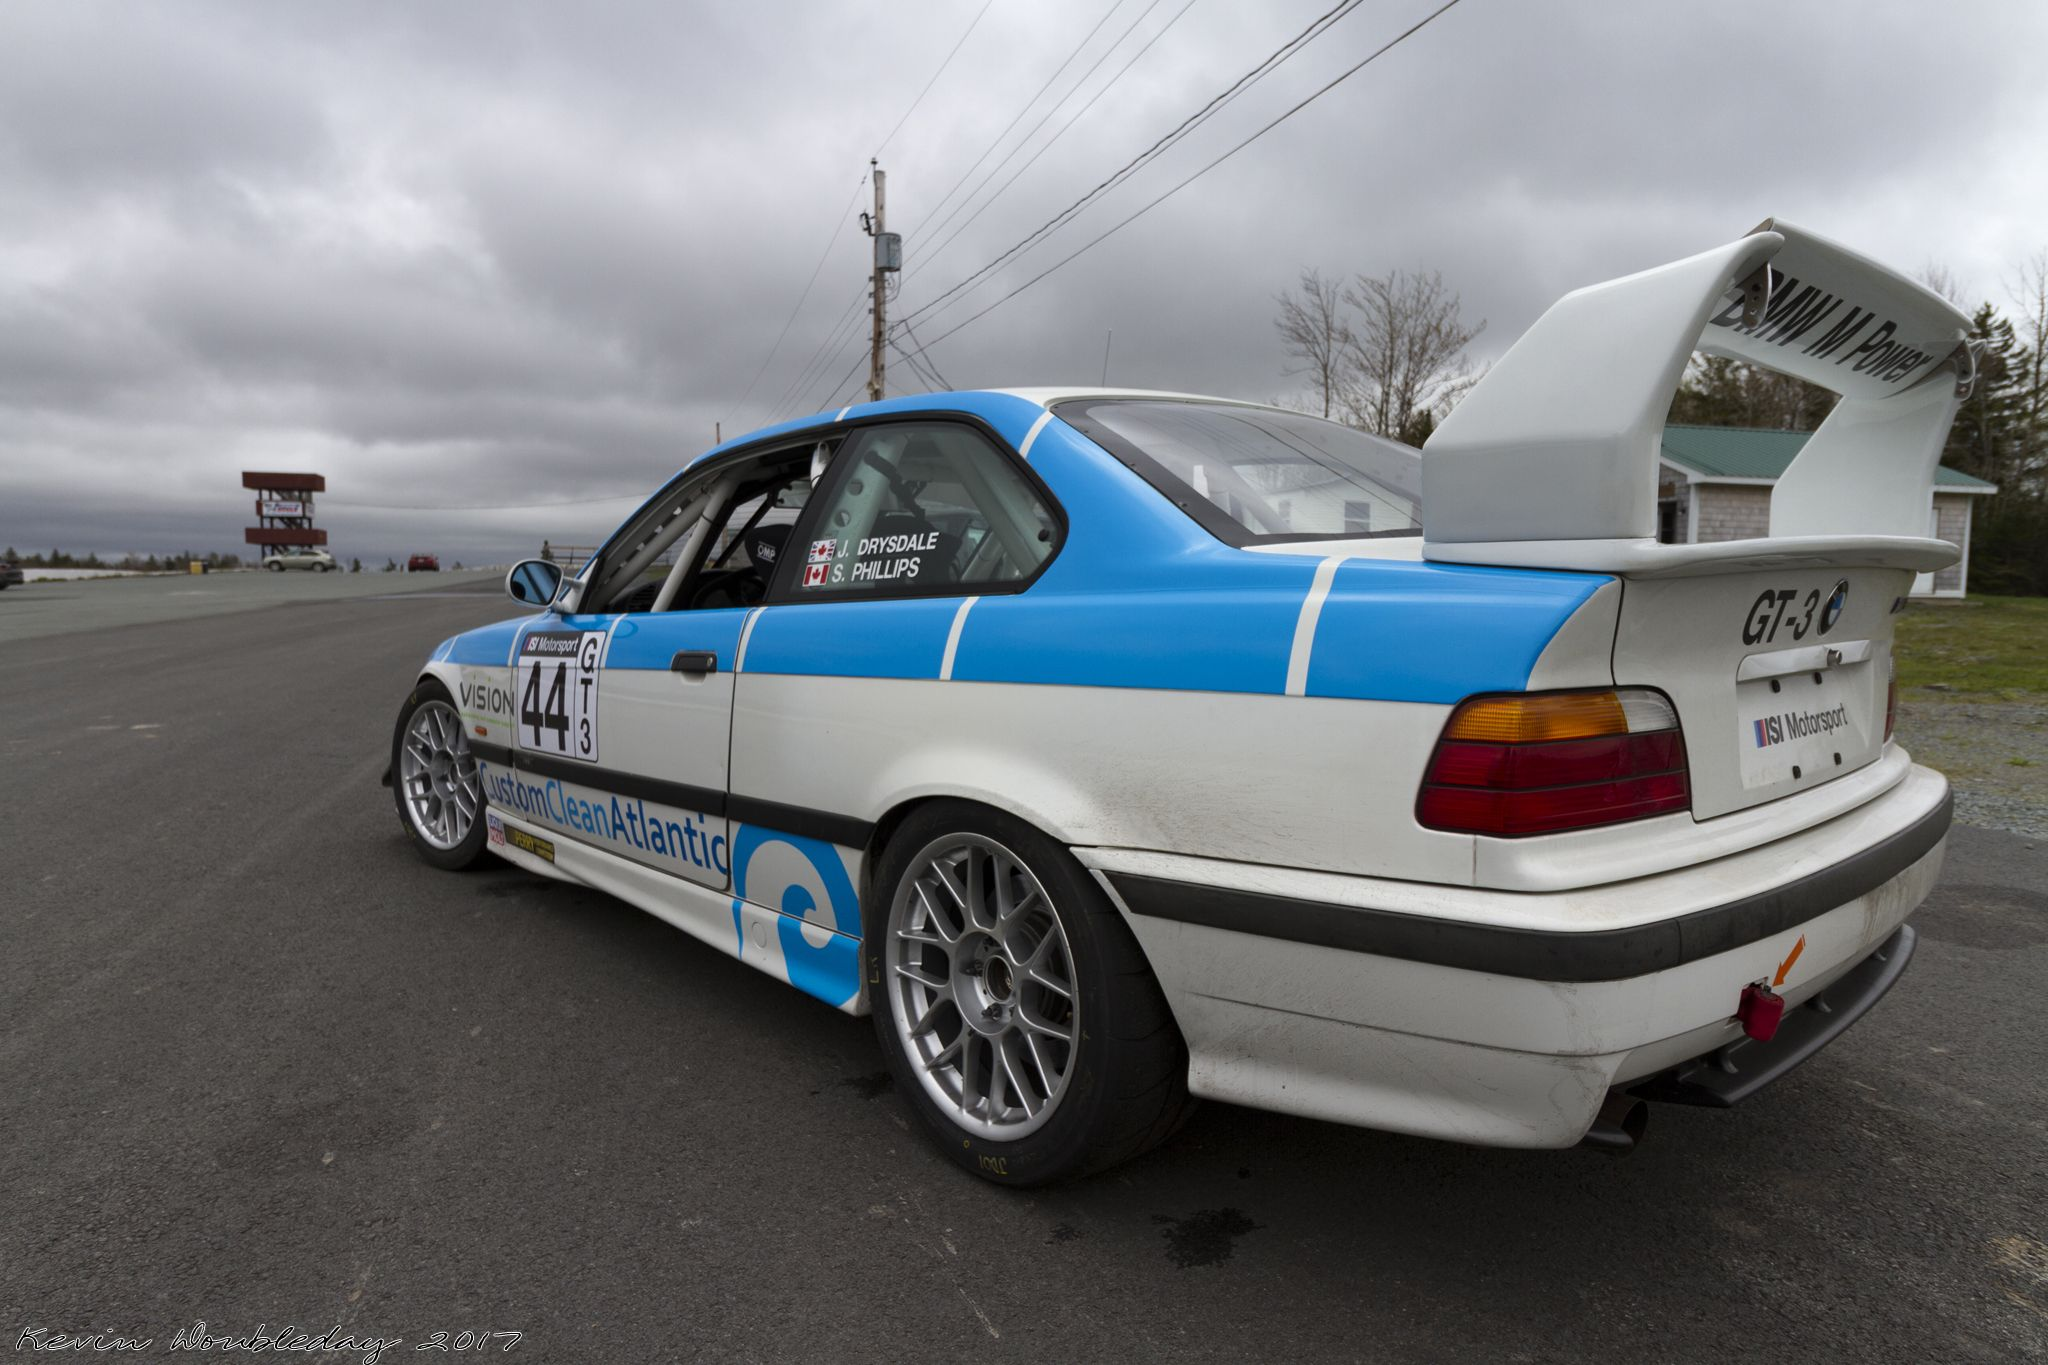 E36 Bmw M3 Race Car With A S54 Engine Swap From An E46 M3.